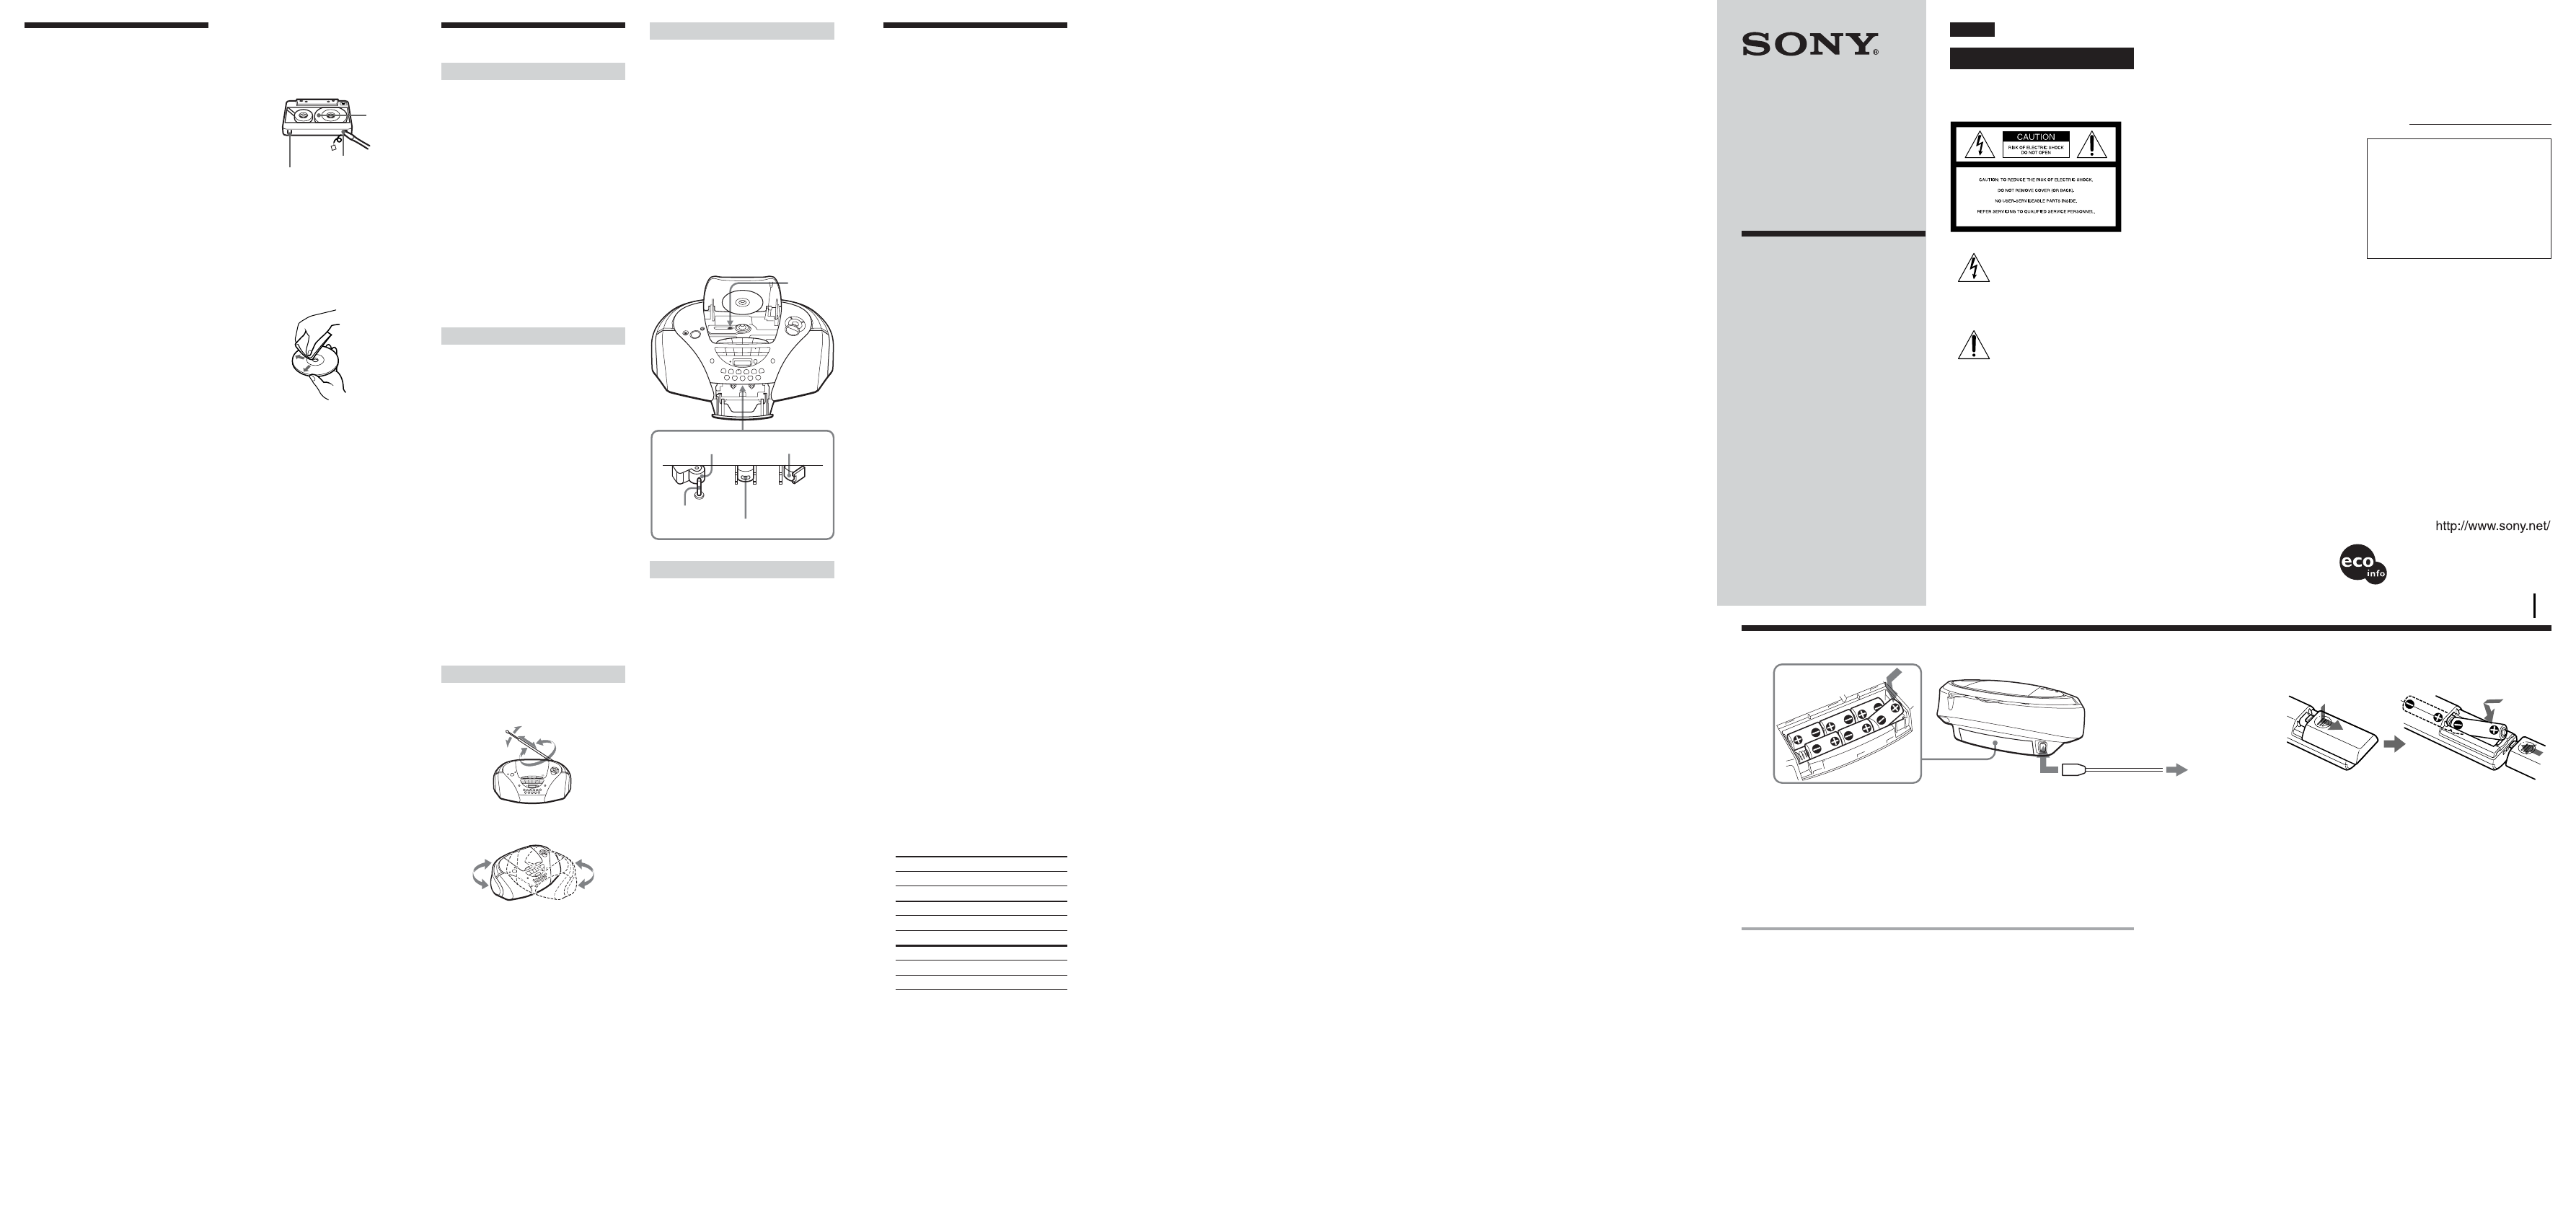 Sony Portable Cd Player Cfd S300 User Guide Manualsonlinecom Net O View Topic Bmw Reset Tool Circuit Diagram Please Check Manual